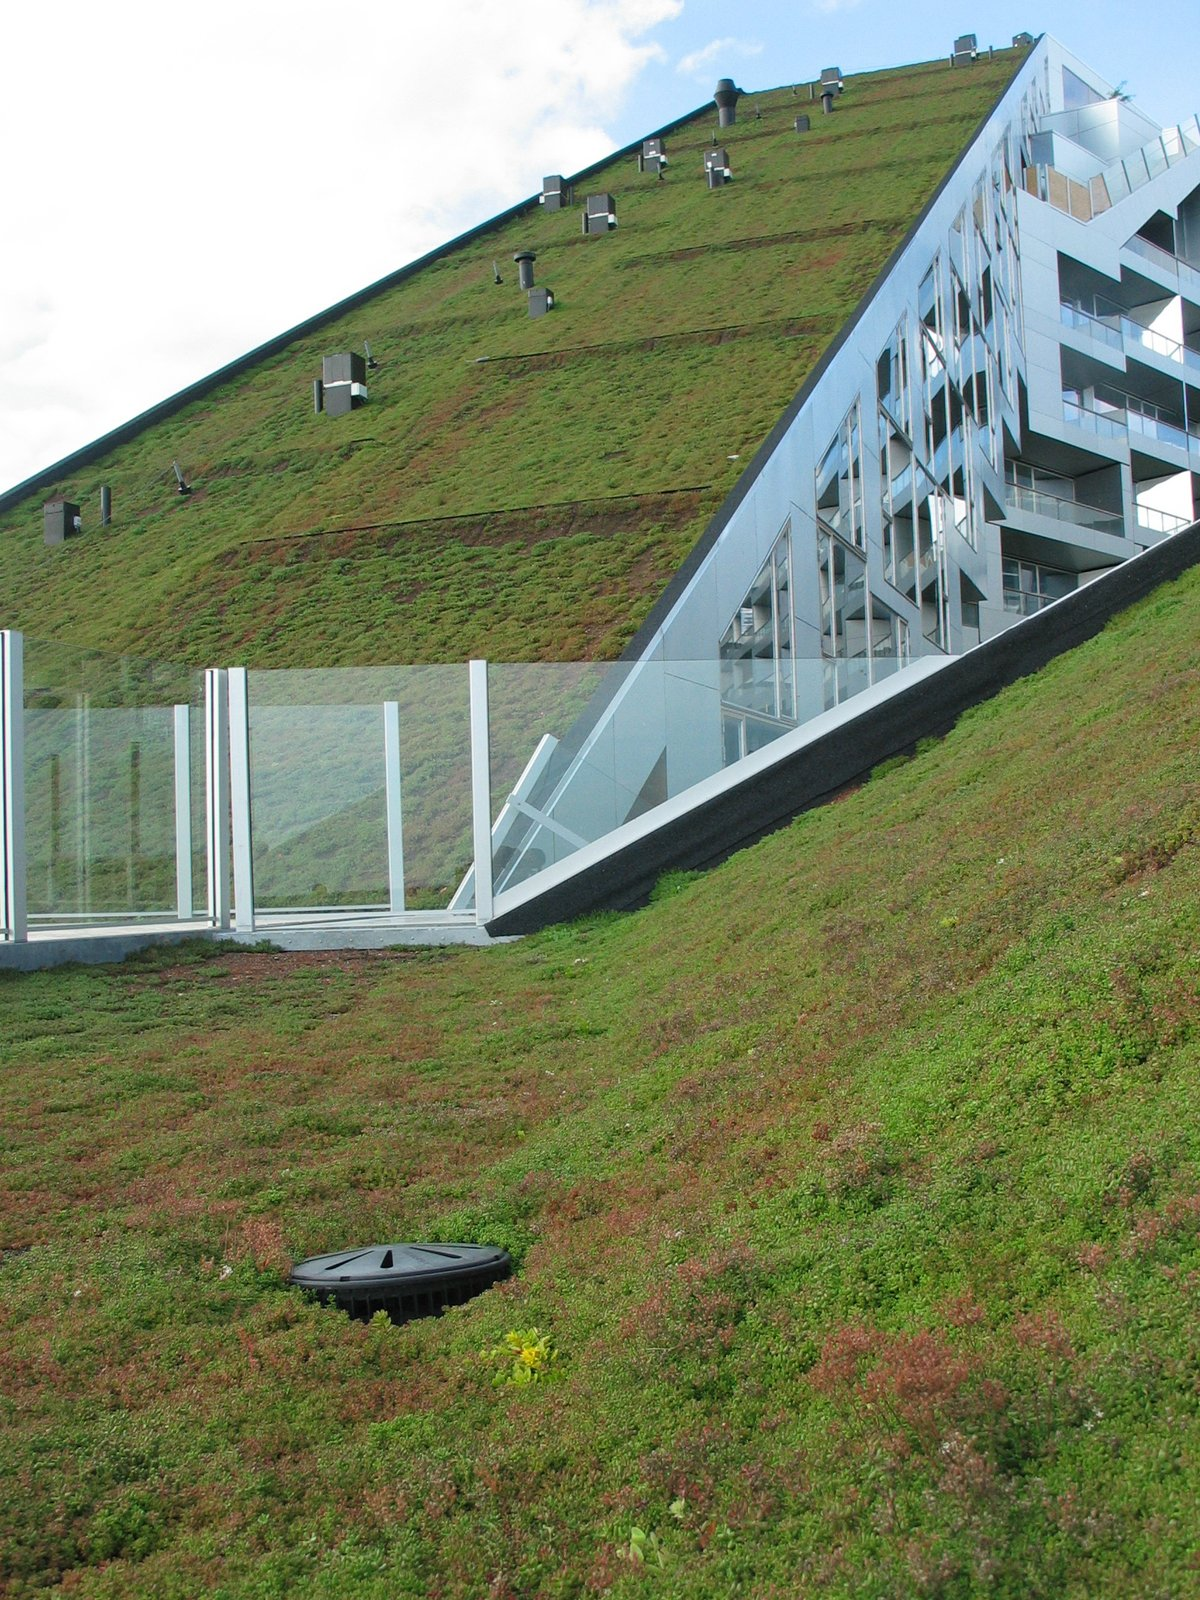 On two of the Eight House's sloping roofs are more than 2,000 square feet of green roofs. The goal was to reduce the urban heat island effect and increase the efficiency of the building as well as reference the farmlands and protected space to the south.  House by Bjarke Ingels Group by Miyoko Ohtake